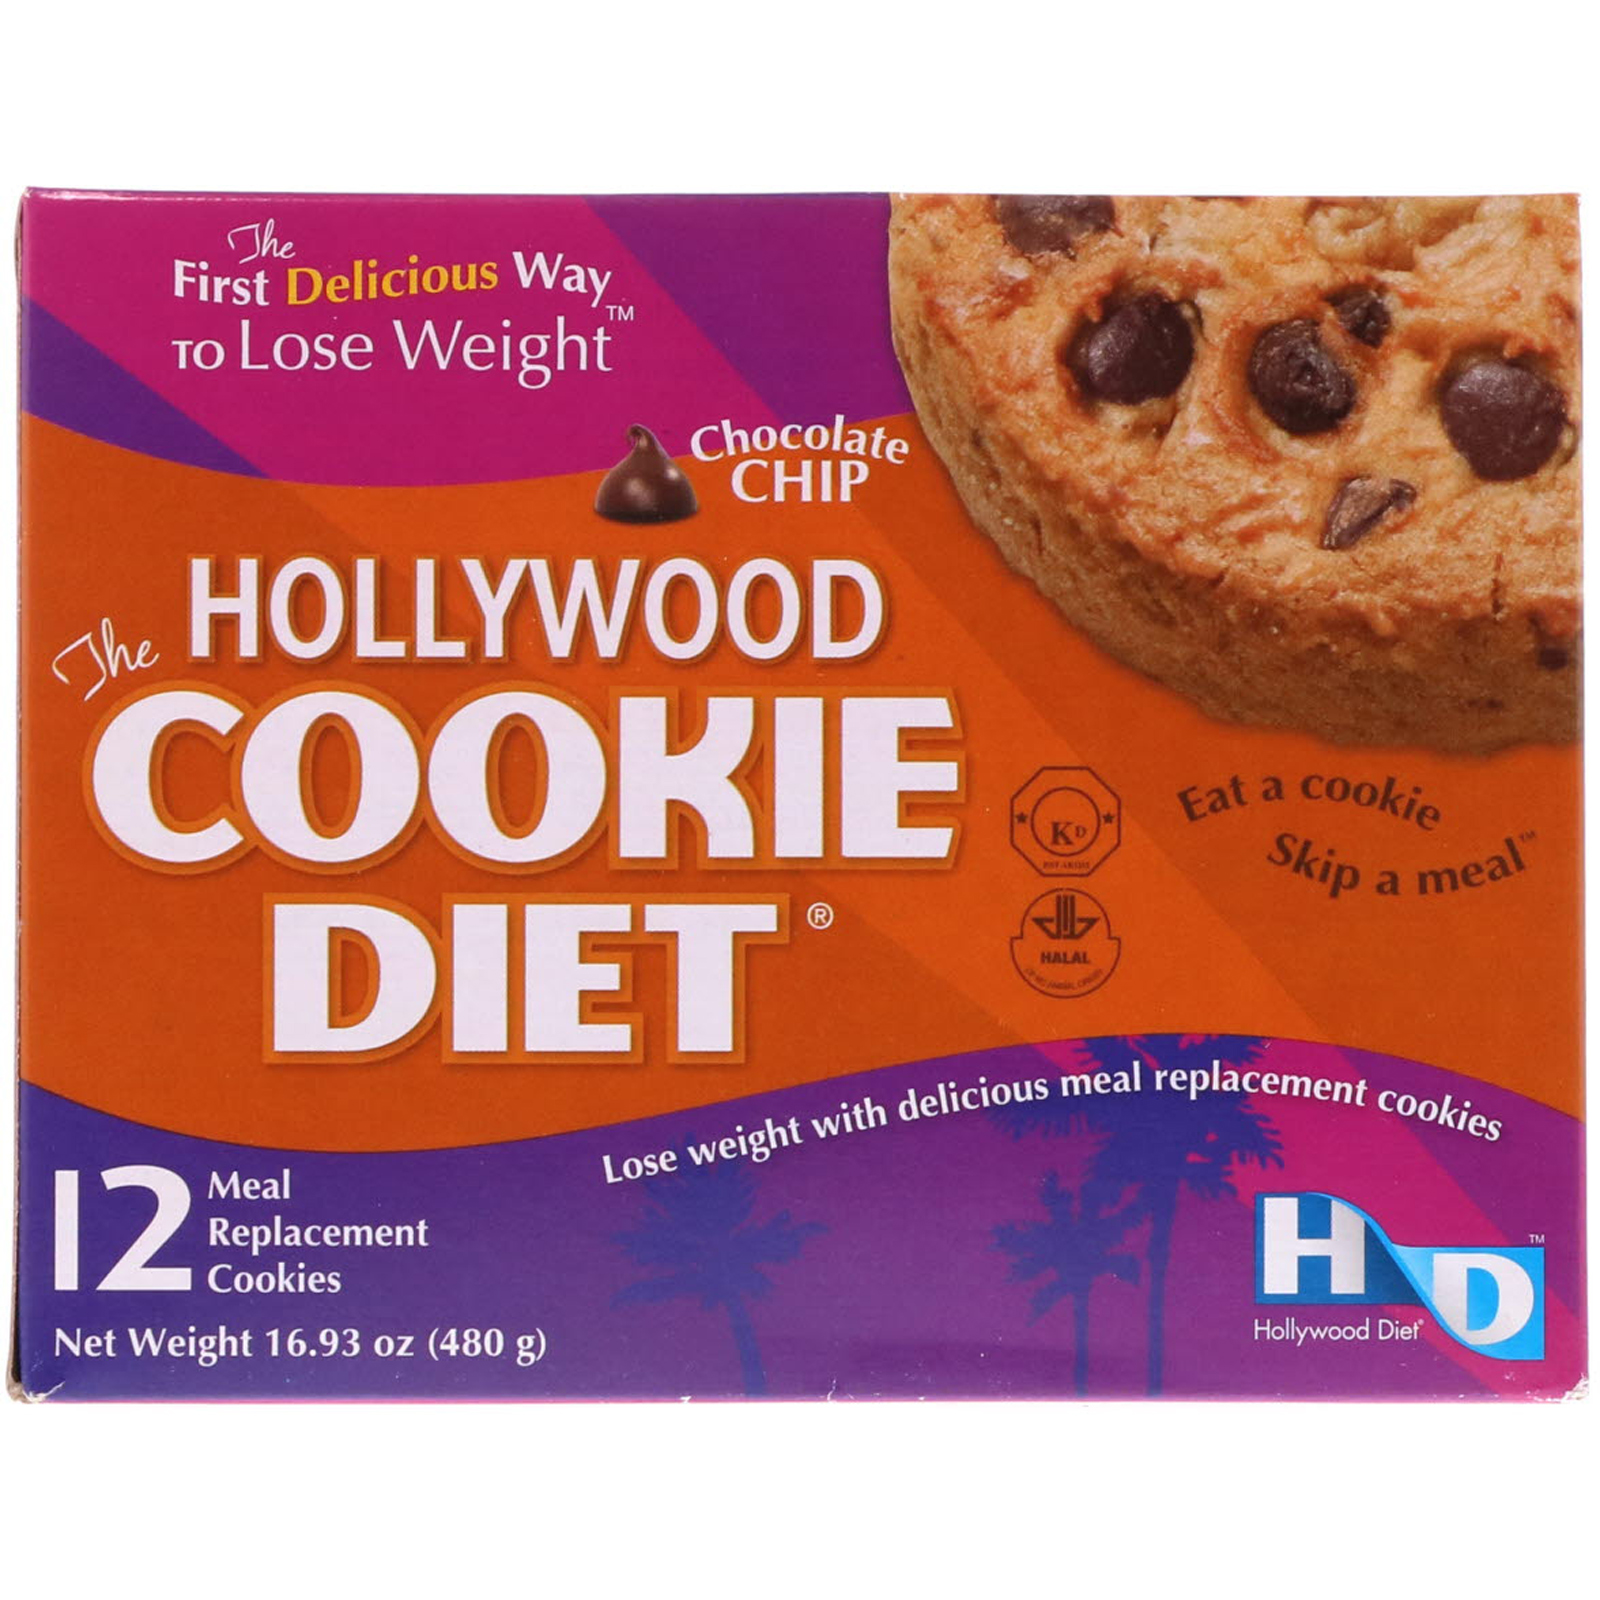 Hollywood Diet The Hollywood Cookie Diet Chocolate Chip 12 Meal